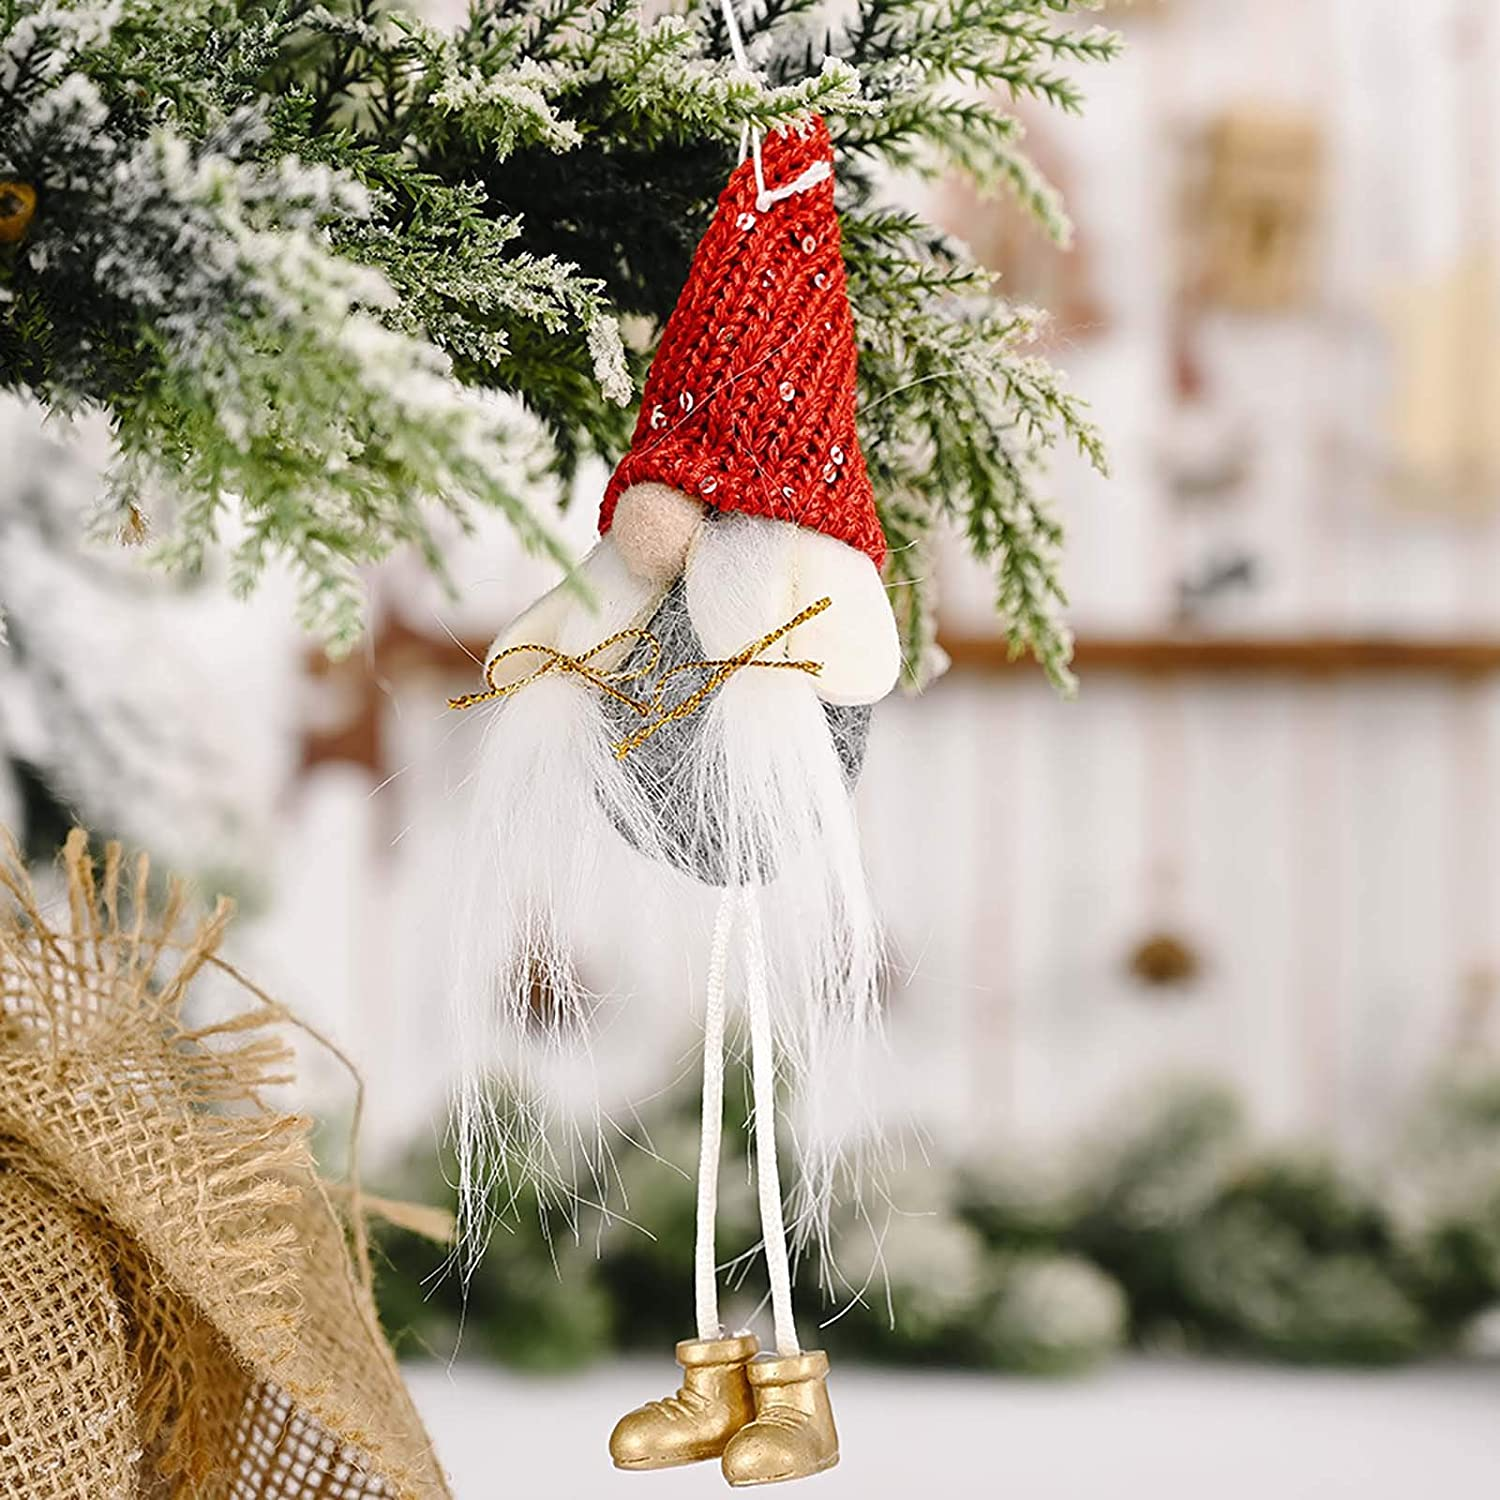 official website Janly Clearance Sale Home Decor, Christmas ...